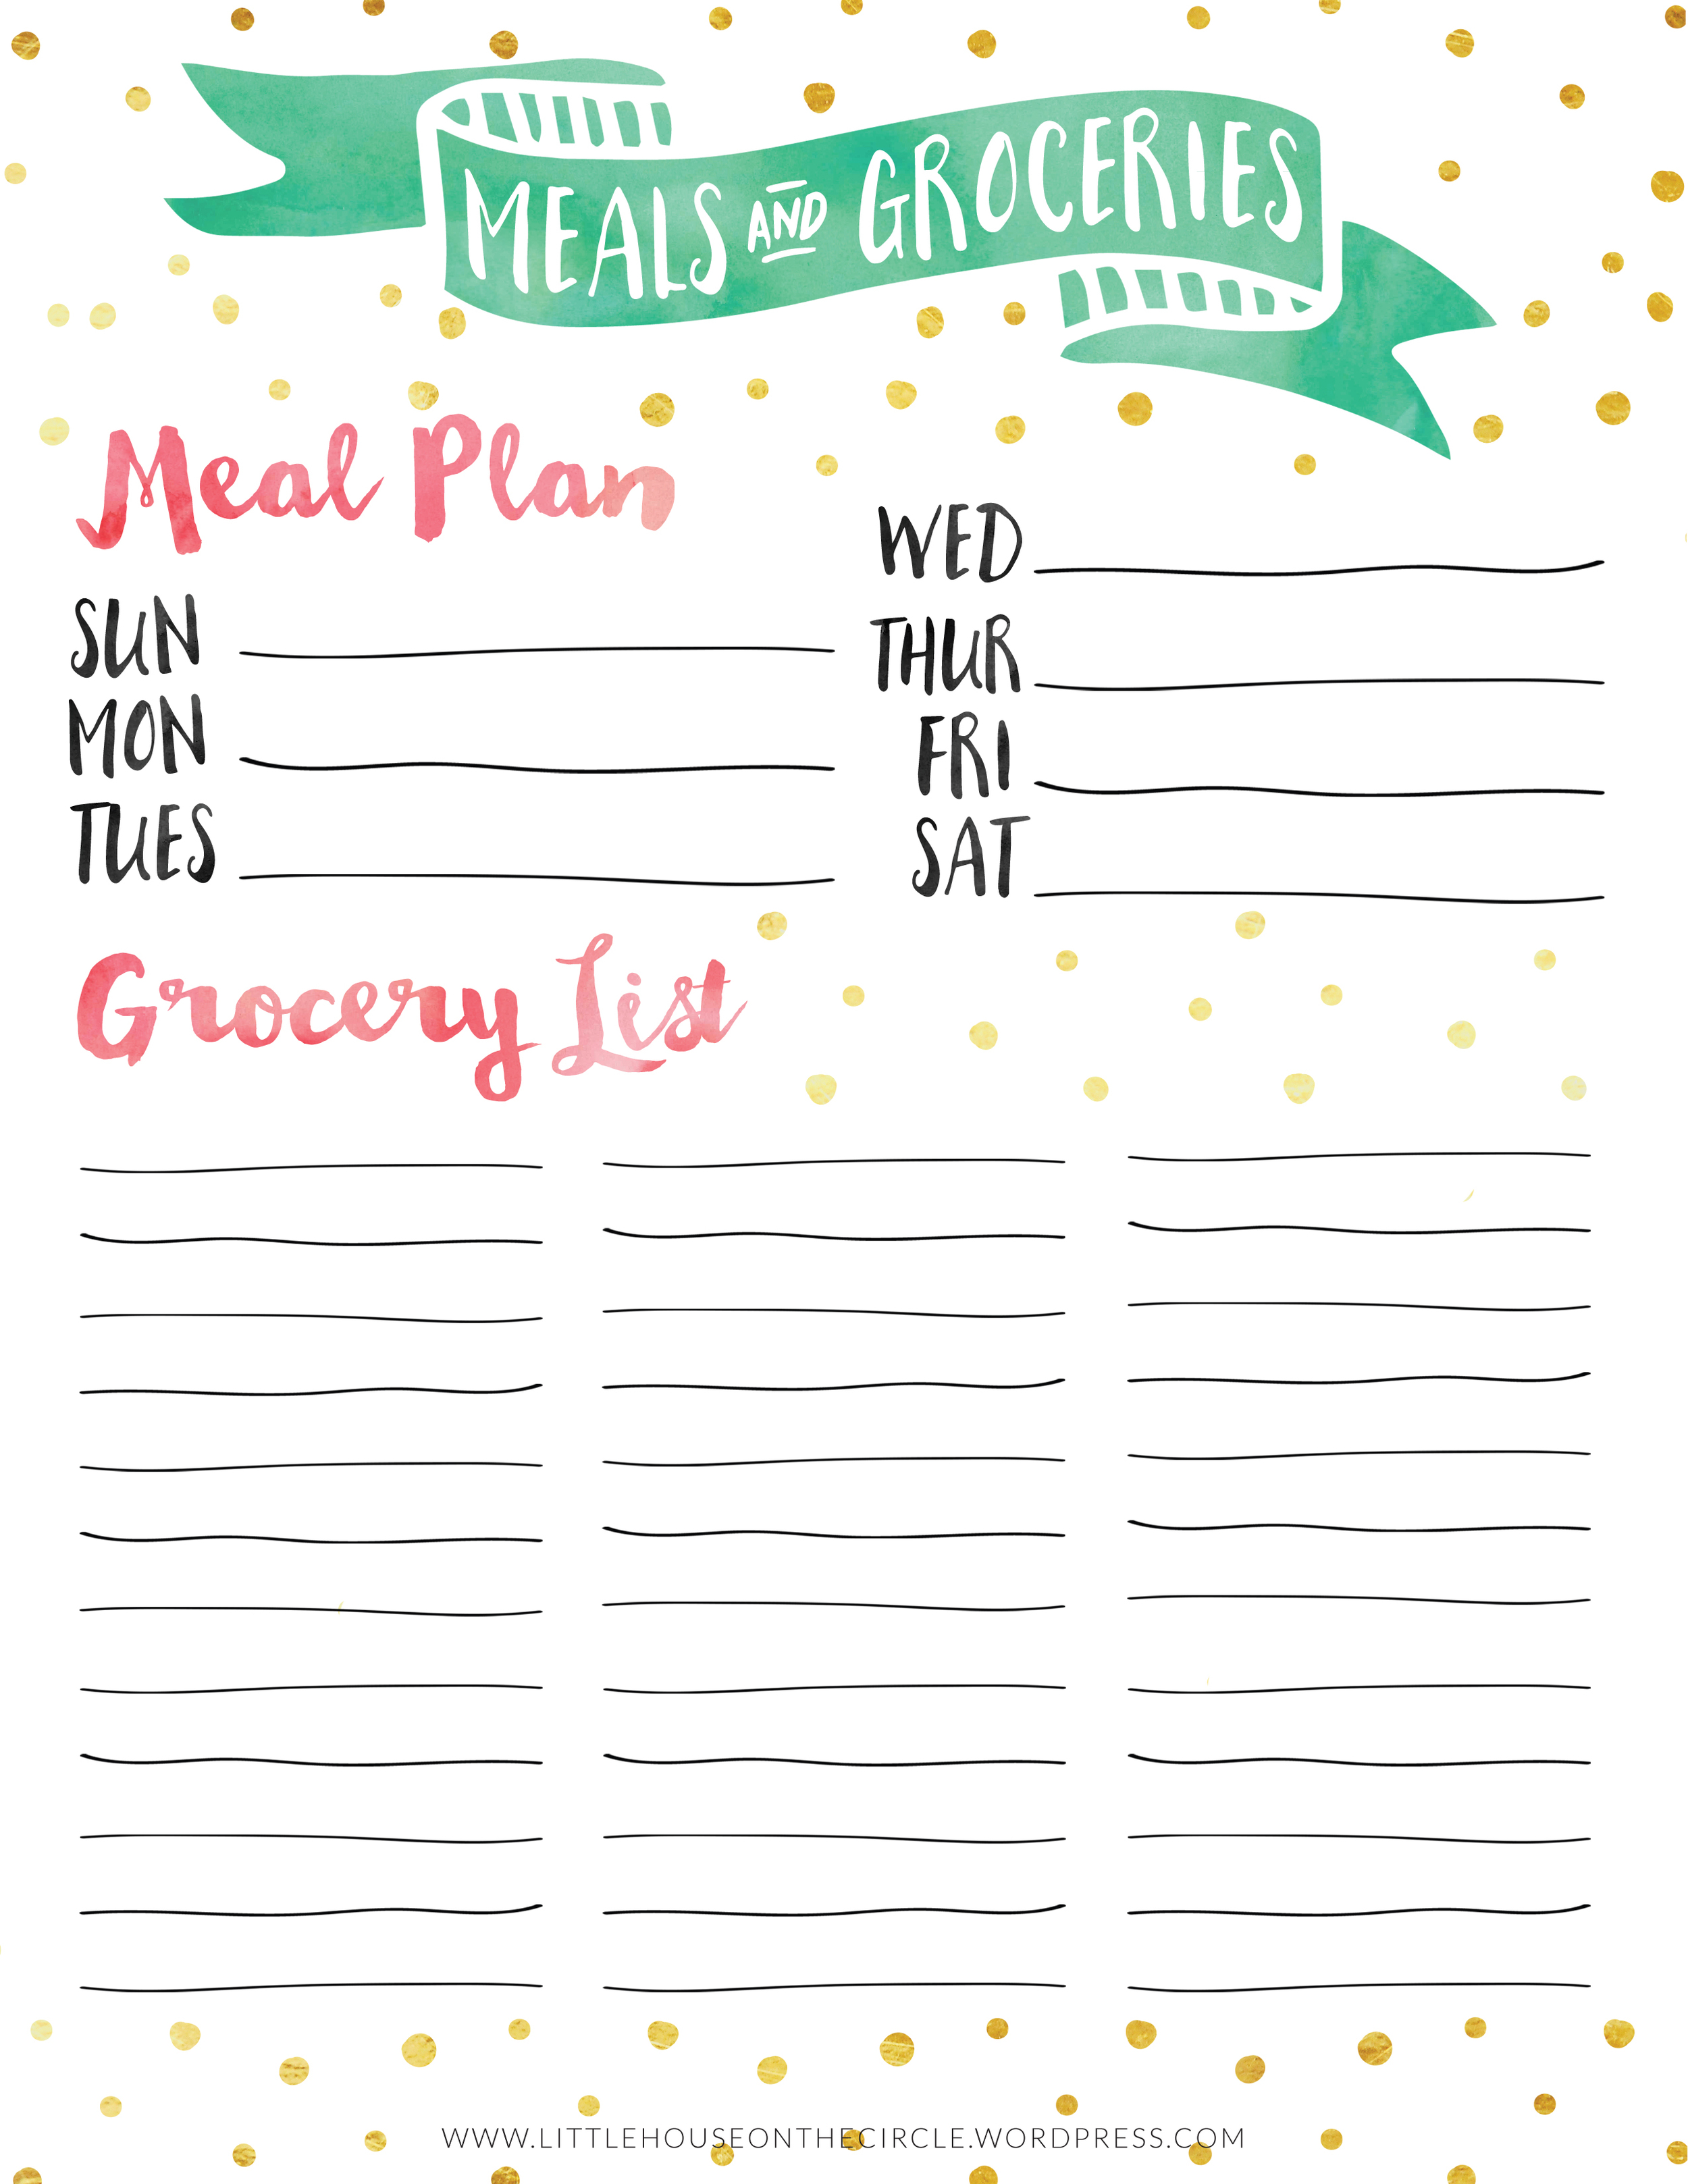 Little House on the Circle: Meal Plan & Grocery List Printable